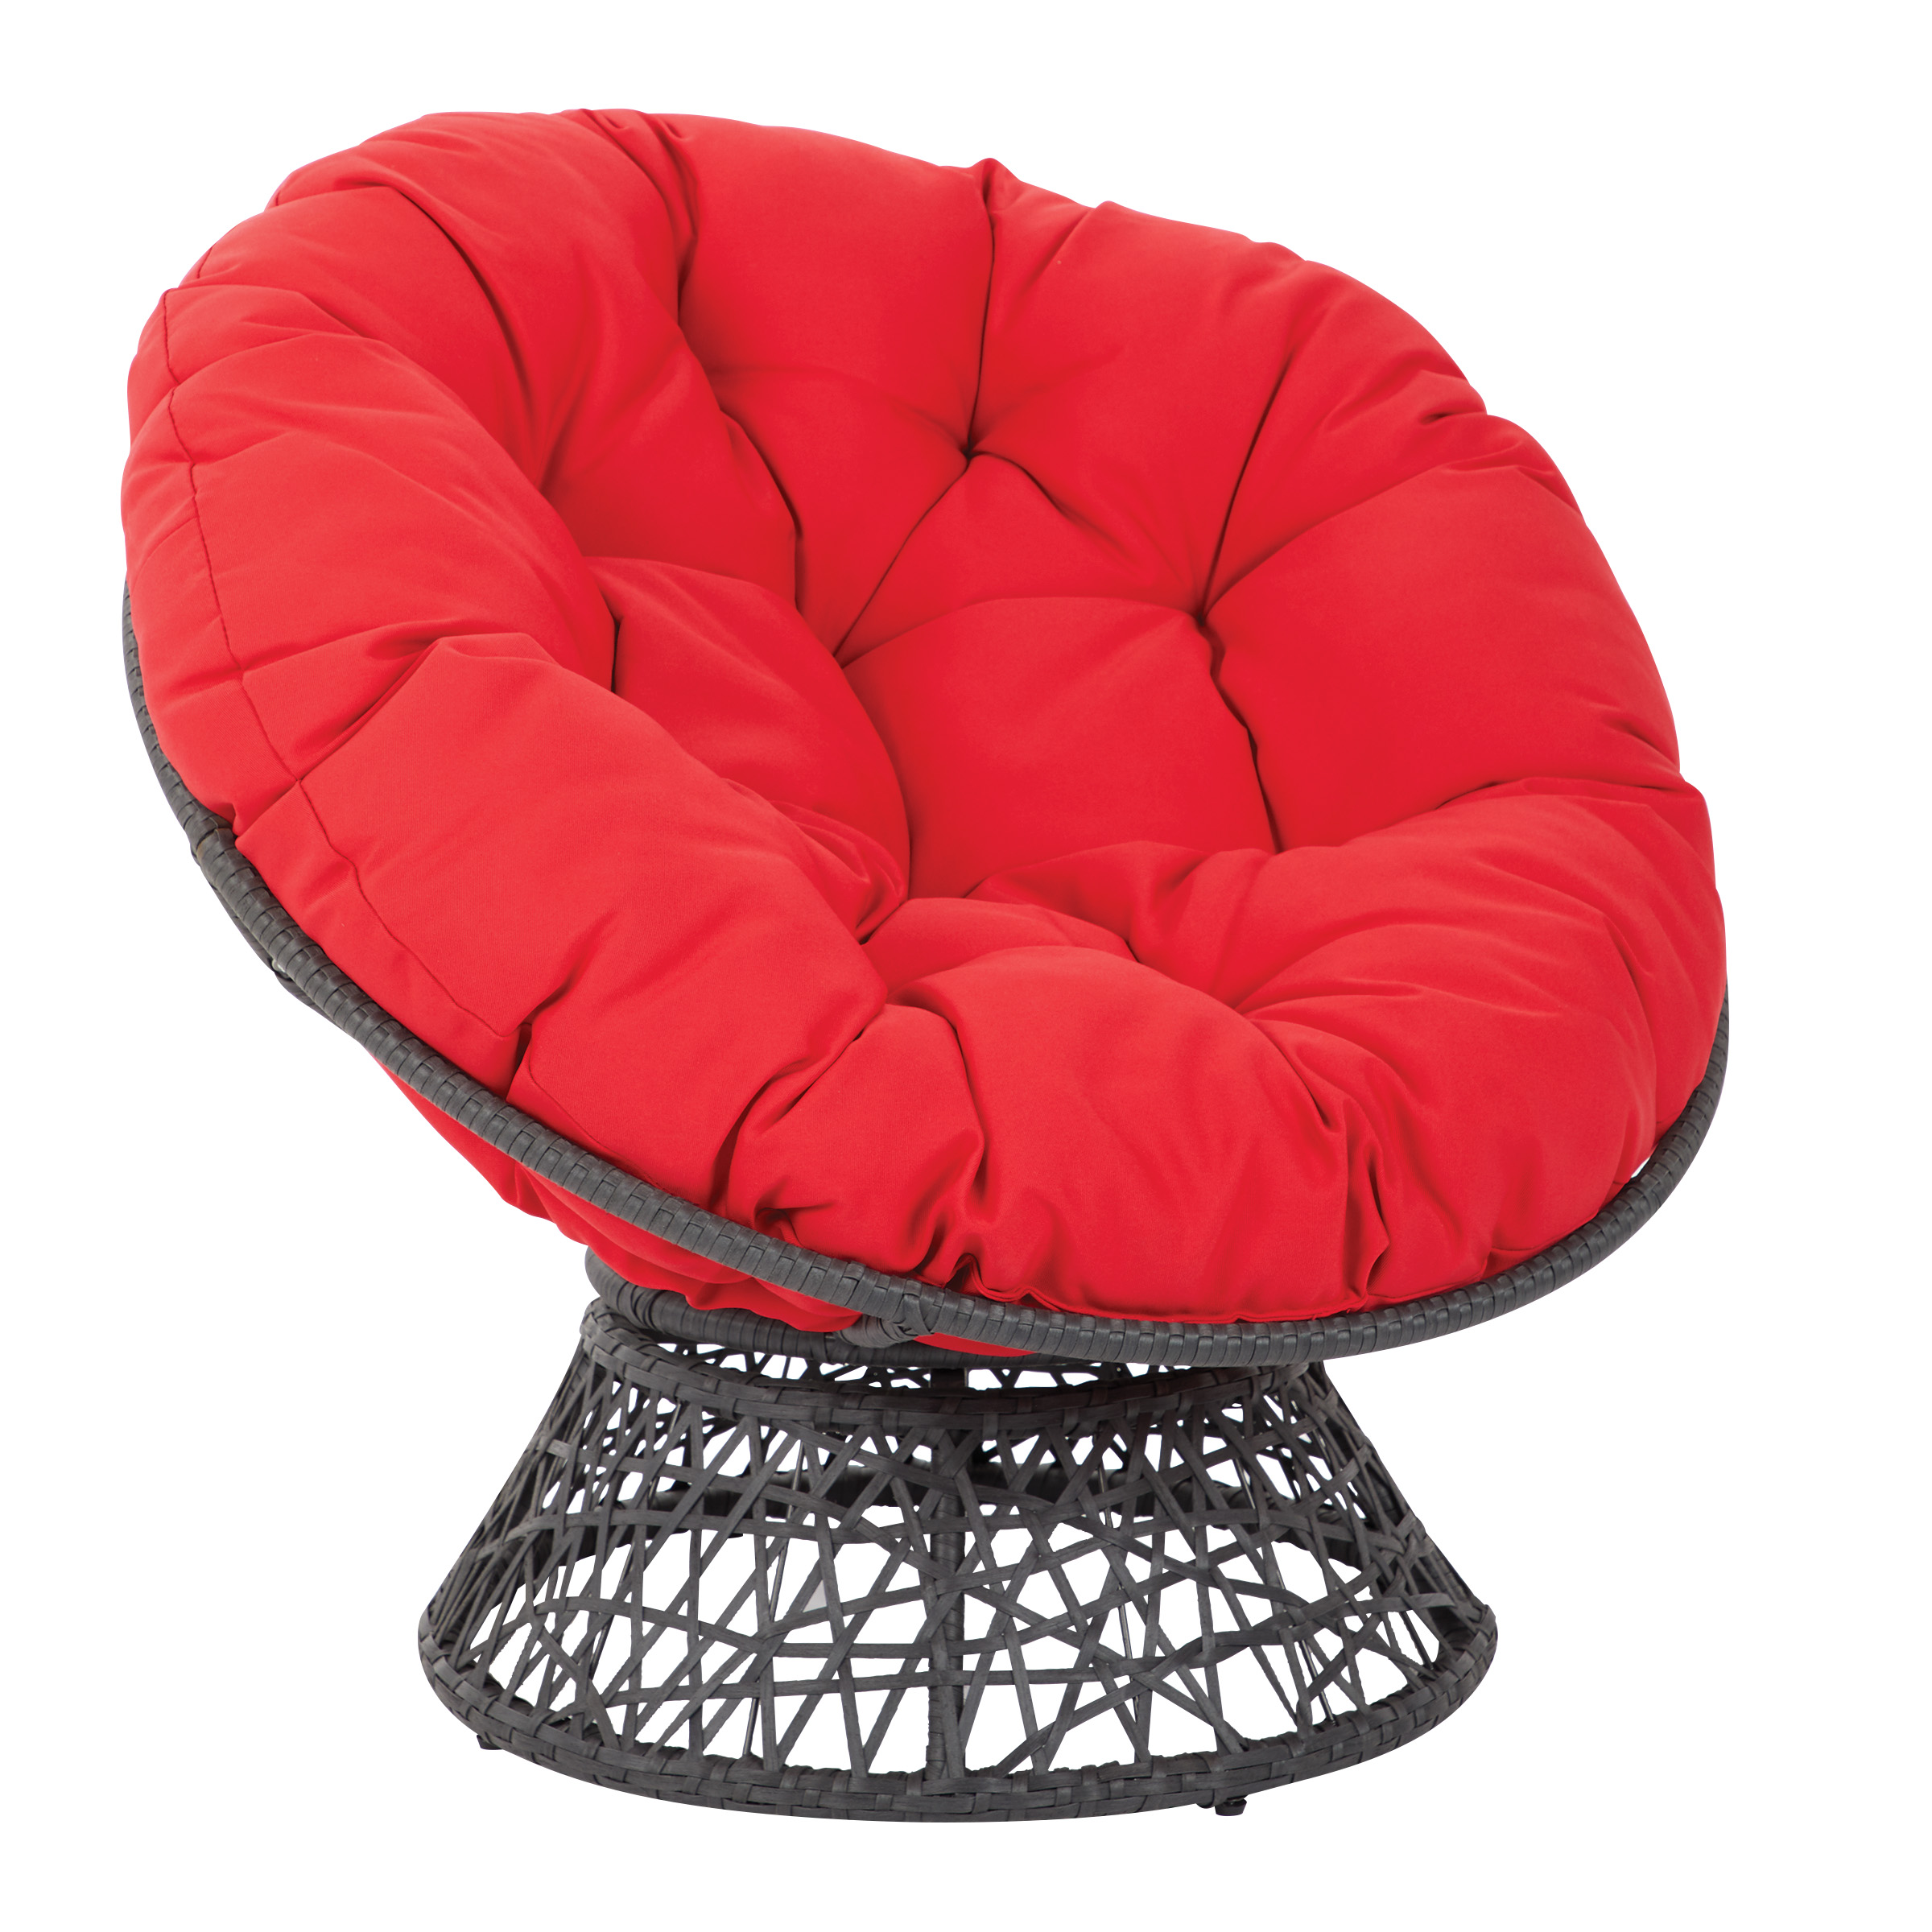 Papasan Chair with Red cushion and Black Frame